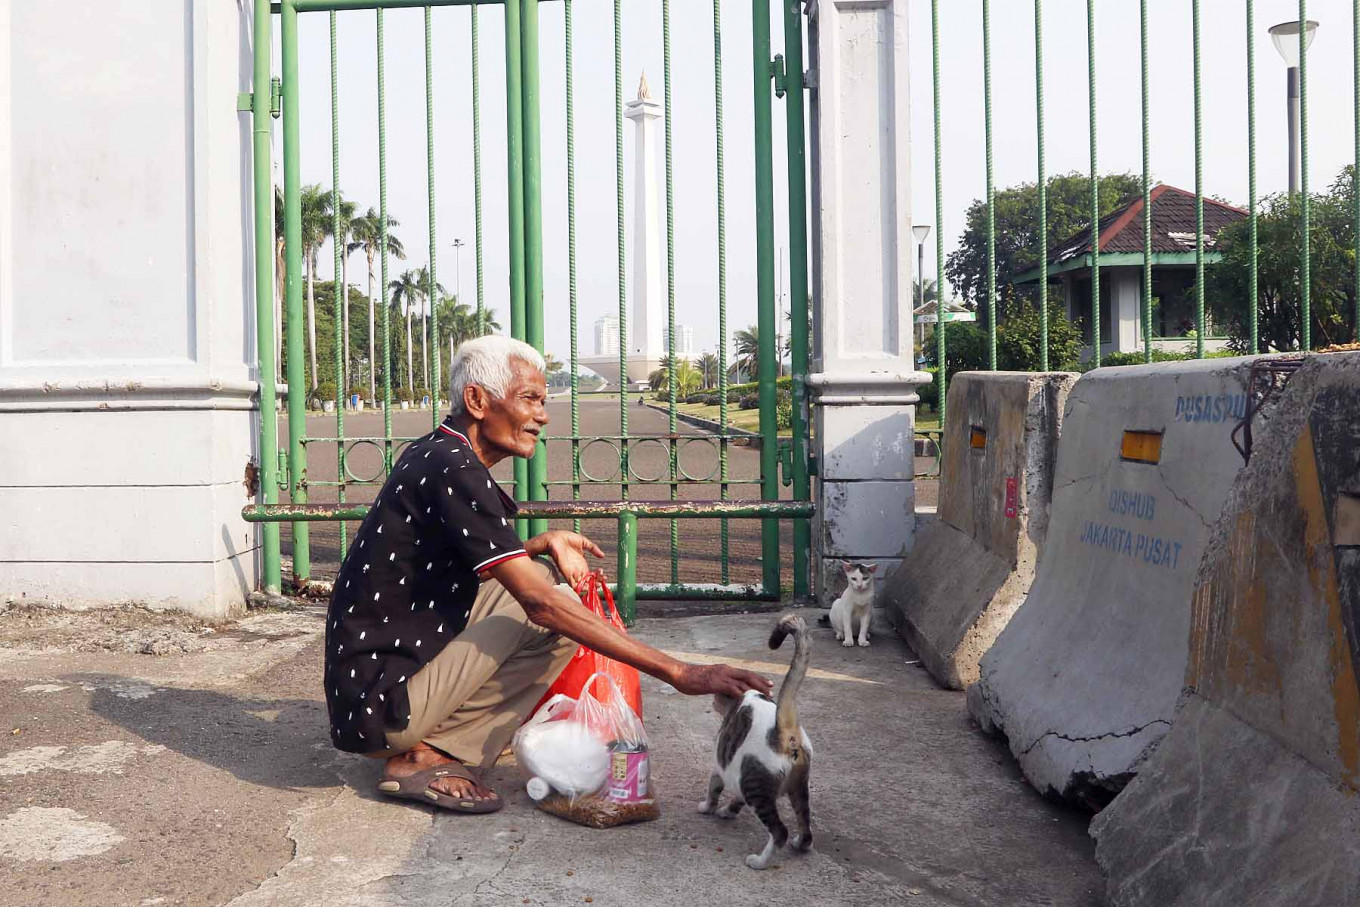 Pendi, 72, feeds stray cats outside the National Monument (Monas) complex in Central Jakarta, on September. 2. 2020 Every week, Pendi receives Rp 70,000 (US$4.74) from a donor to buy cat food and feed around 150 stray cats in the area. JP/Dhoni Setiawan